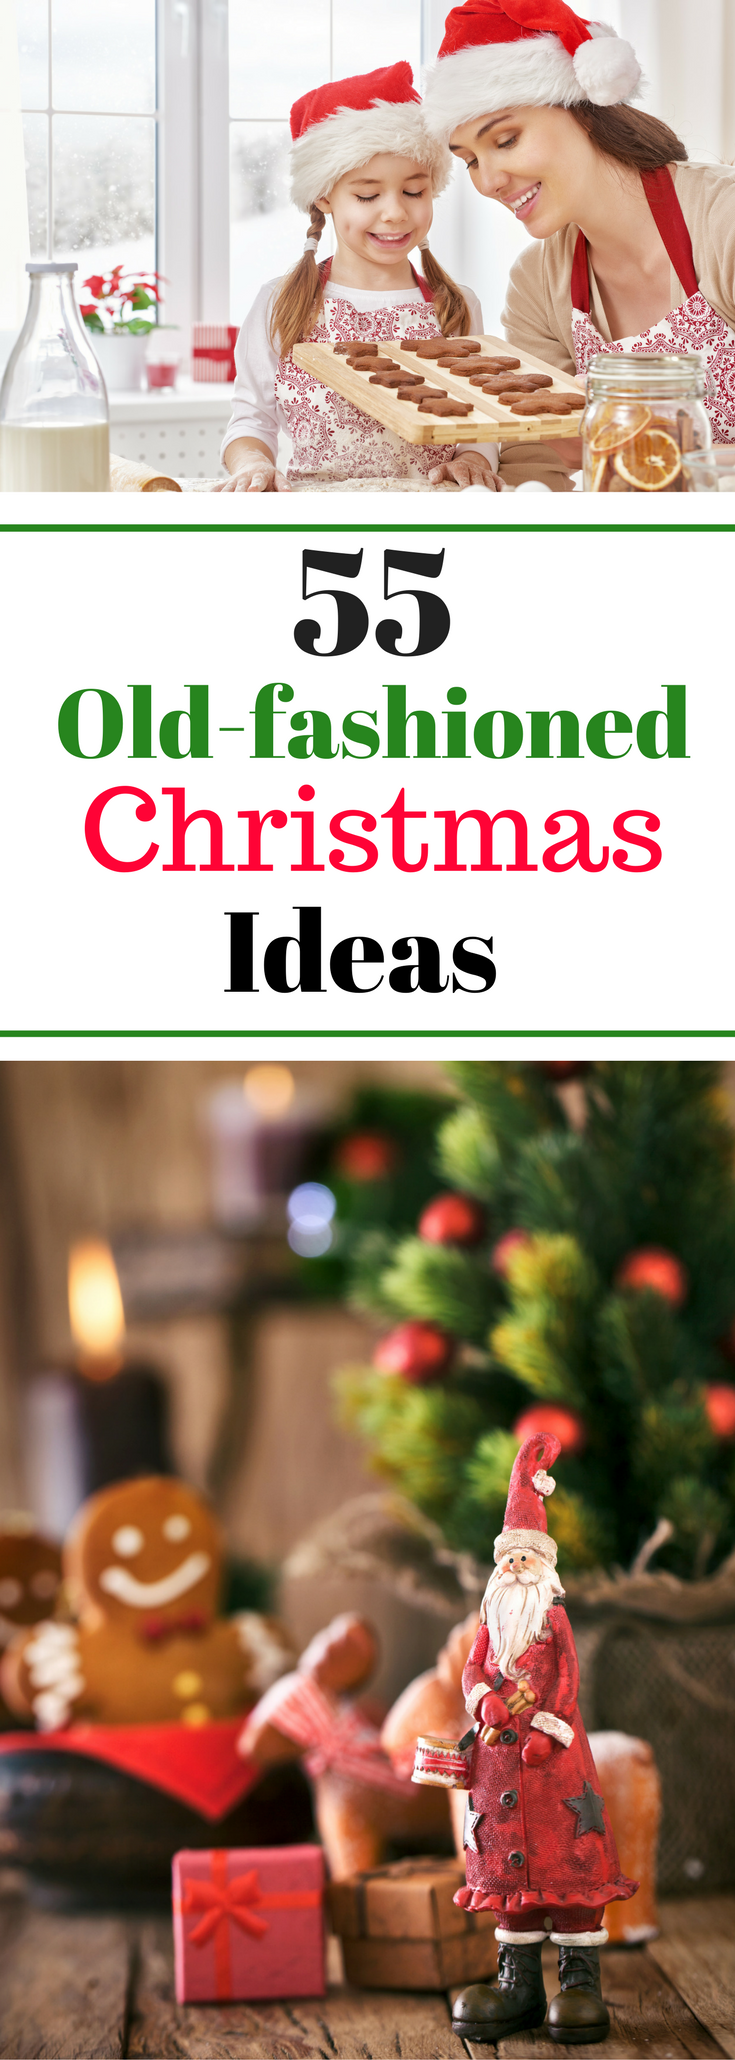 Exceptional Old Fashioned Christmas Party Ideas Part - 14: 55 Old-fashioned Christmas Ideas - Best Things To Do At Christmas To Make  Sure